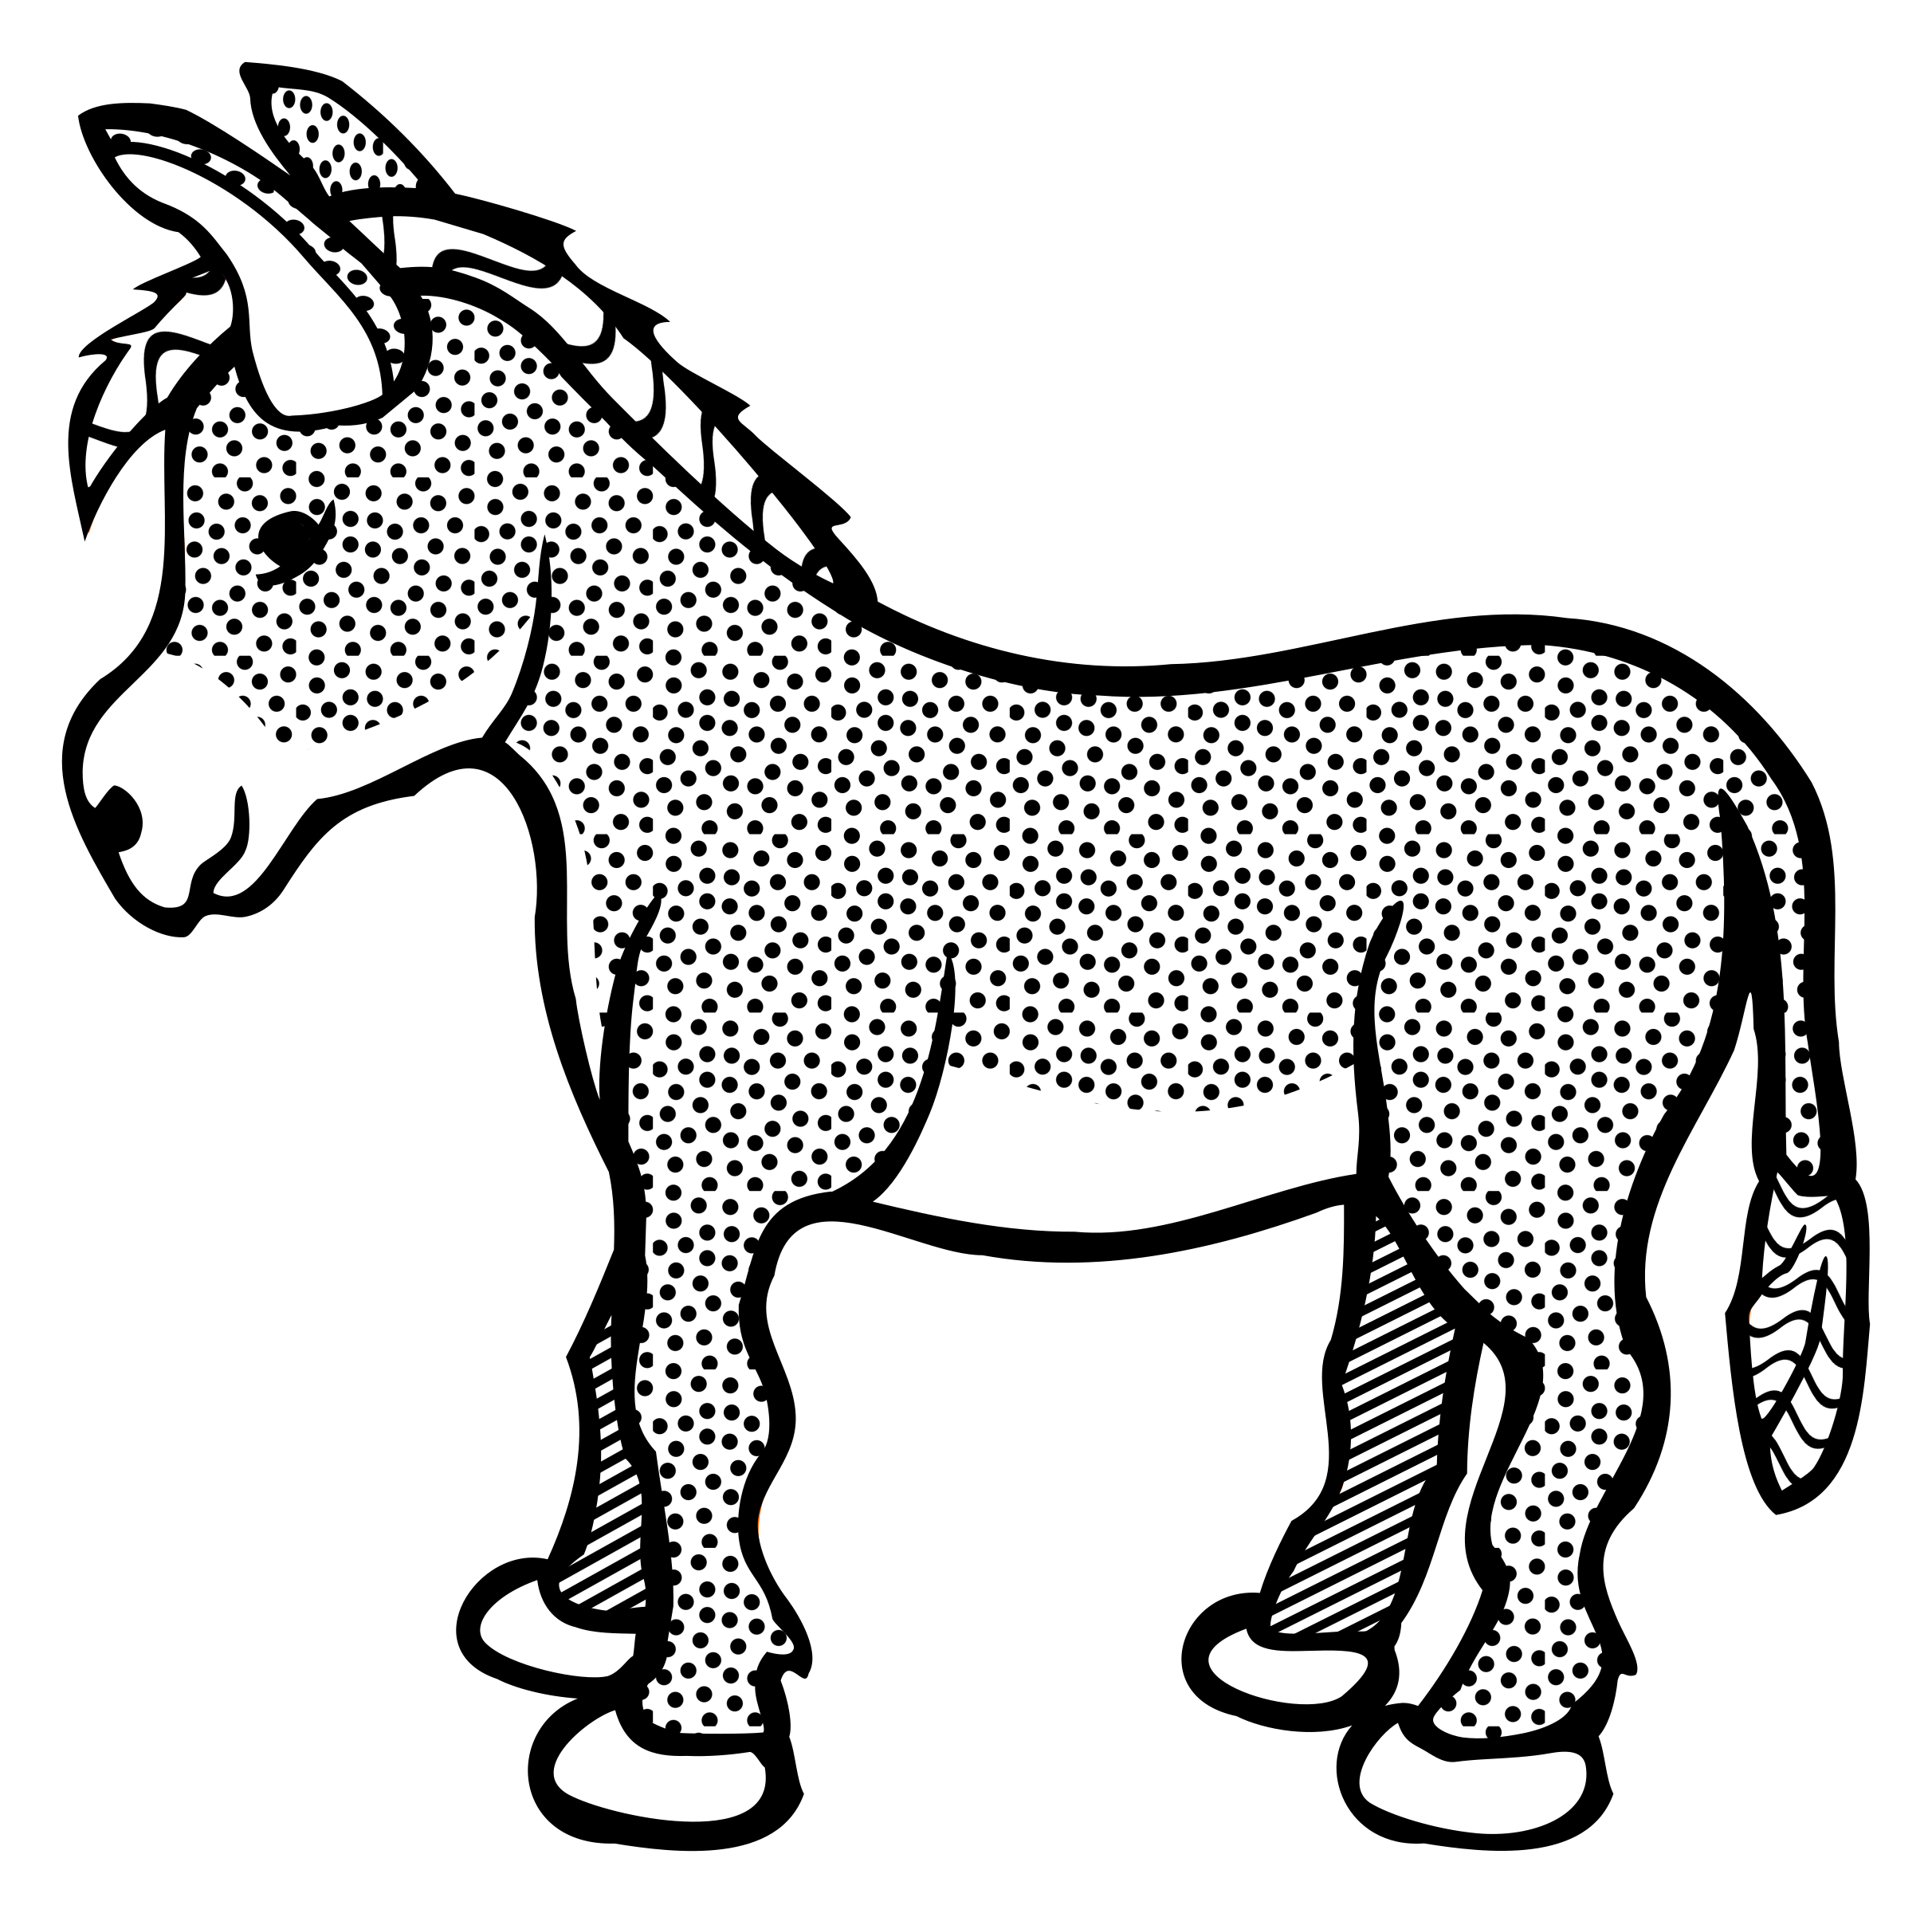 Donkey clipart line. Drawing outline at getdrawings